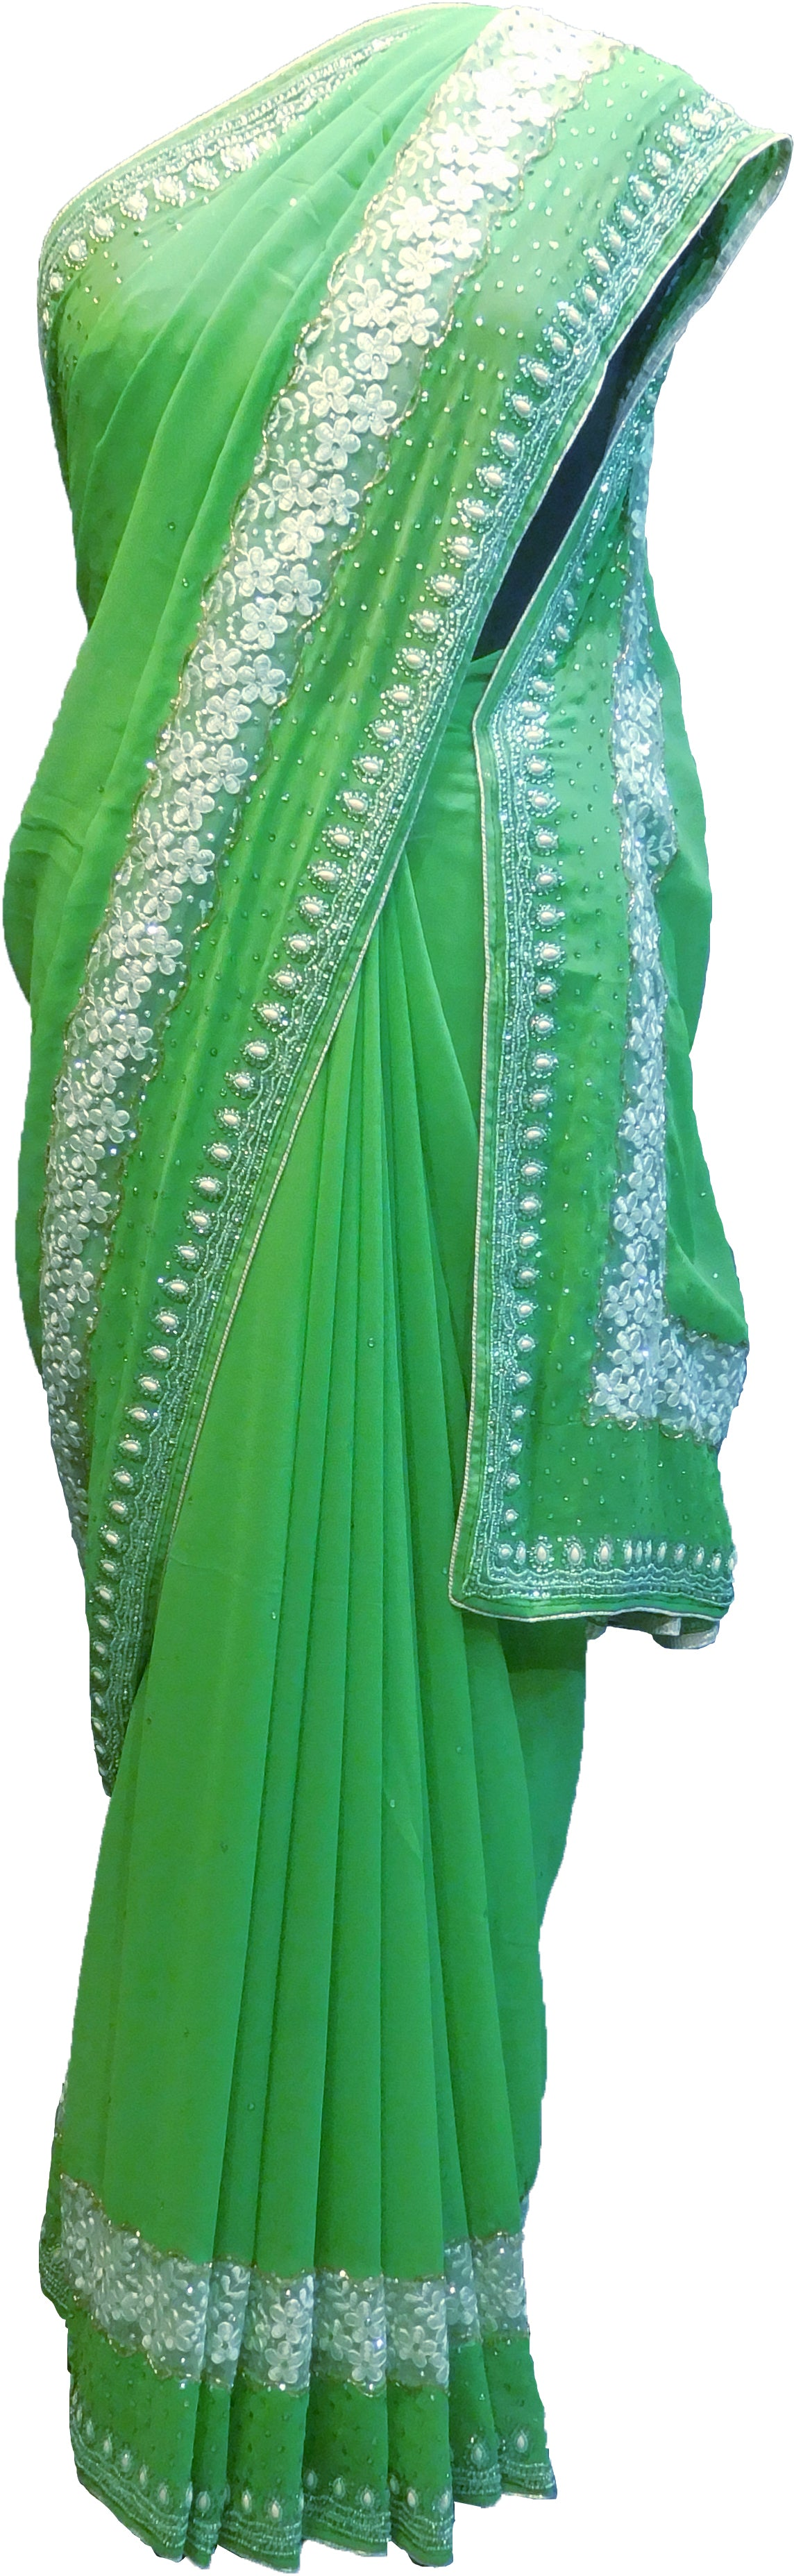 SMSAREE Green Designer Wedding Partywear Georgette Cutdana Stone Beads & Pearl Hand Embroidery Work Bridal Saree Sari With Blouse Piece F356